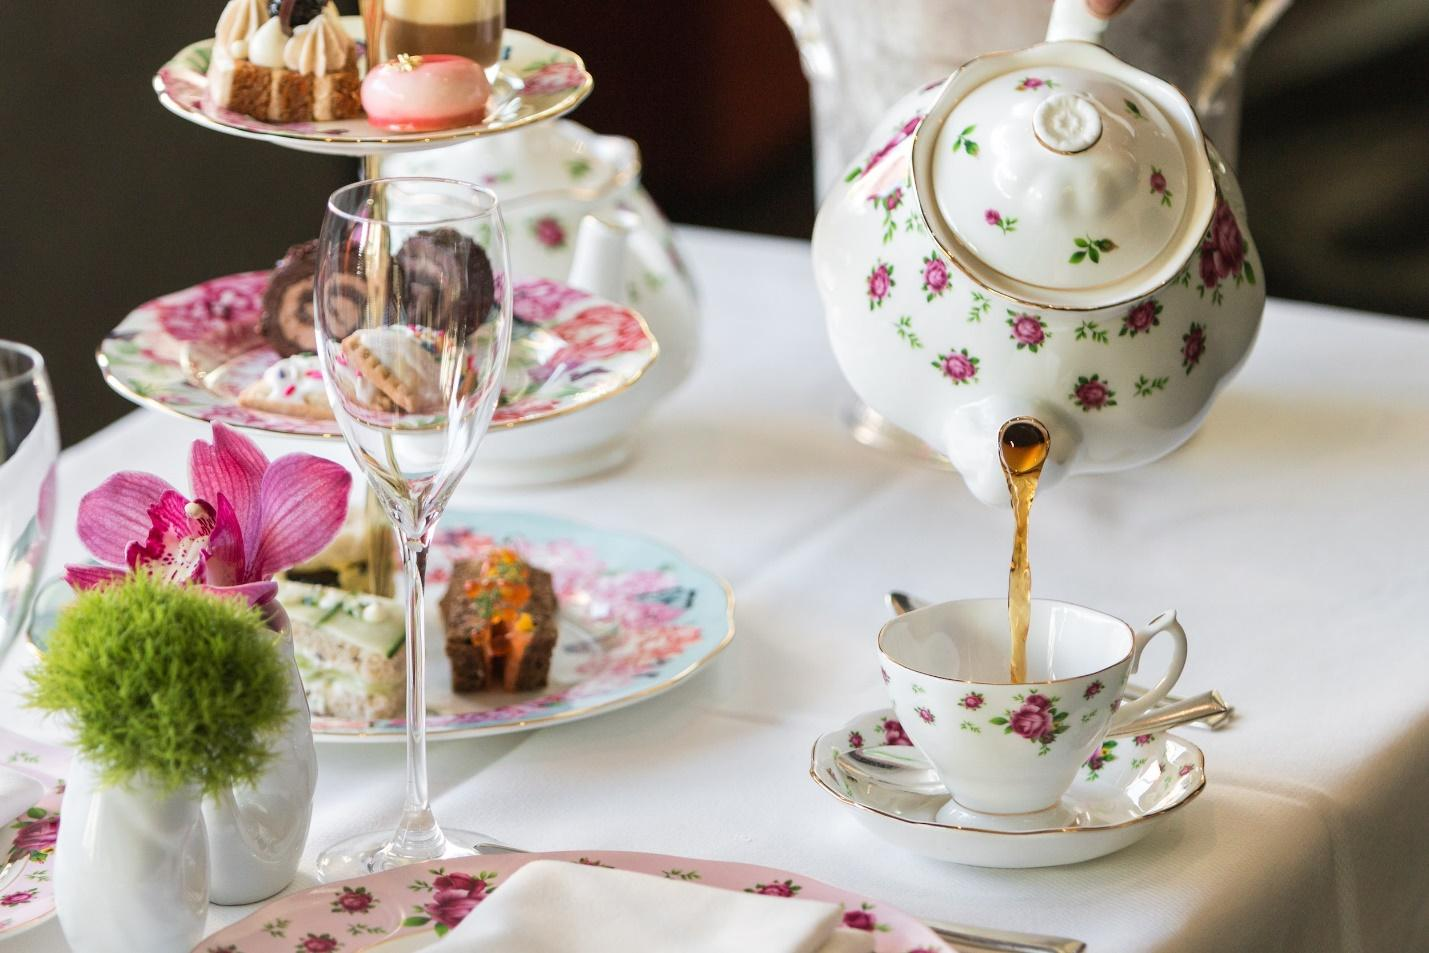 C:\Users\SUPRIYA\Downloads\Kingbird_Watergate_afternoon_tea_with_sweets_011818_DC_LARGE-min.jpg